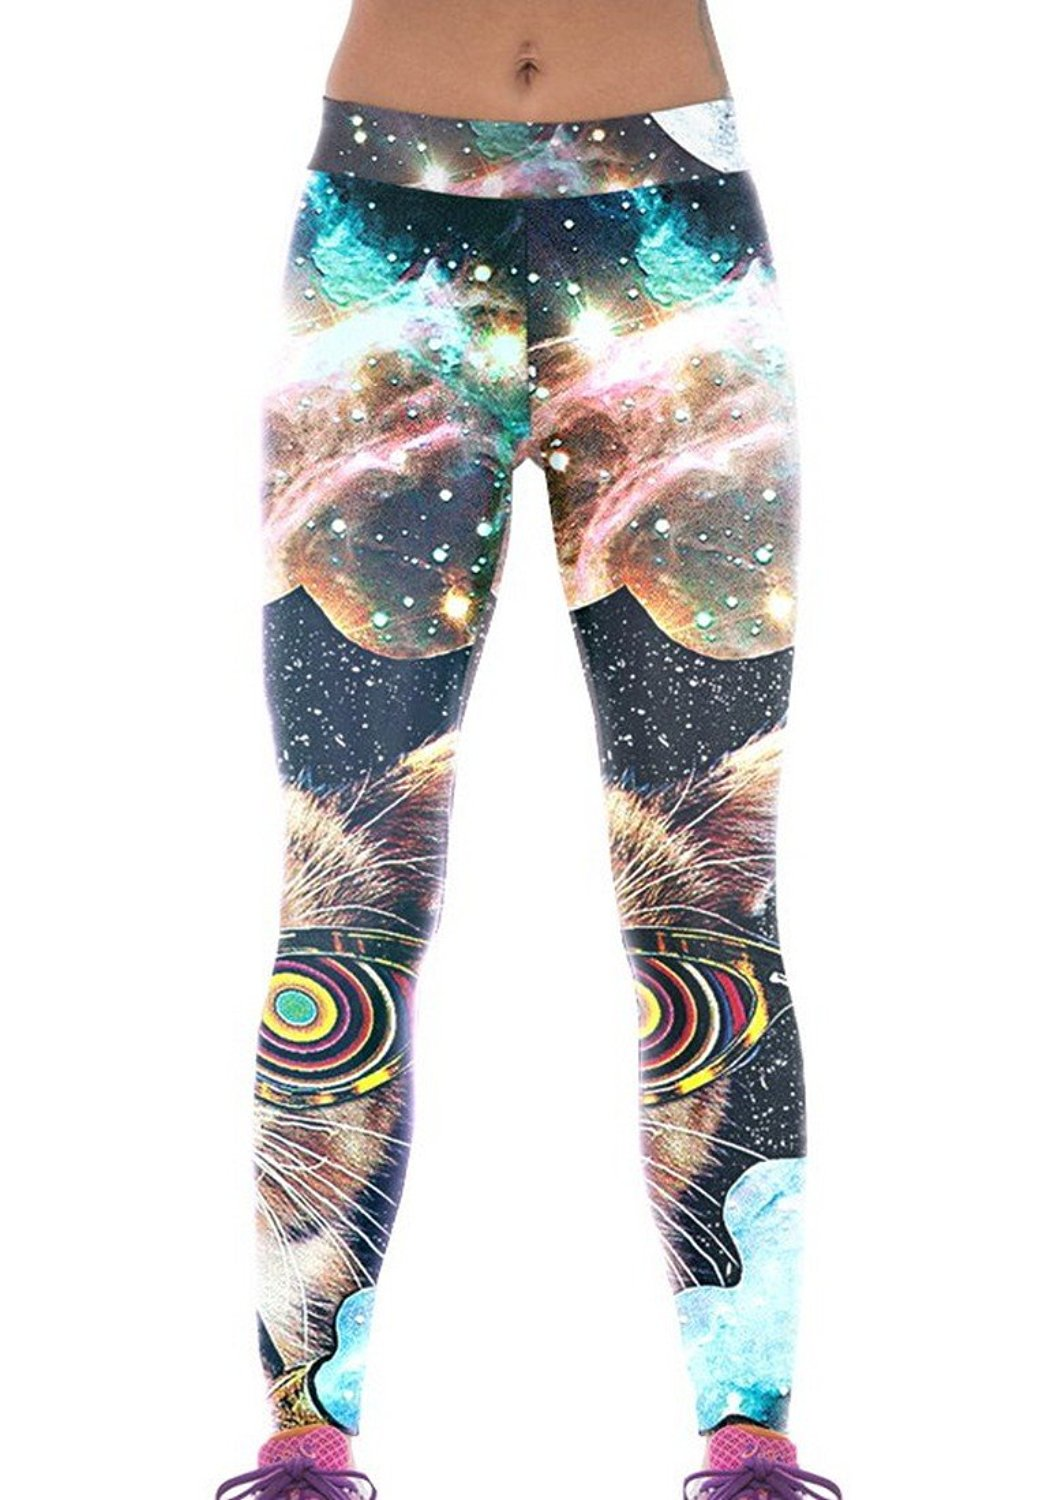 ffeef0df62f603 Get Quotations · RedBeana Women Space Cat Print Workout Yoga Leggings Tight  Pants Multi Color